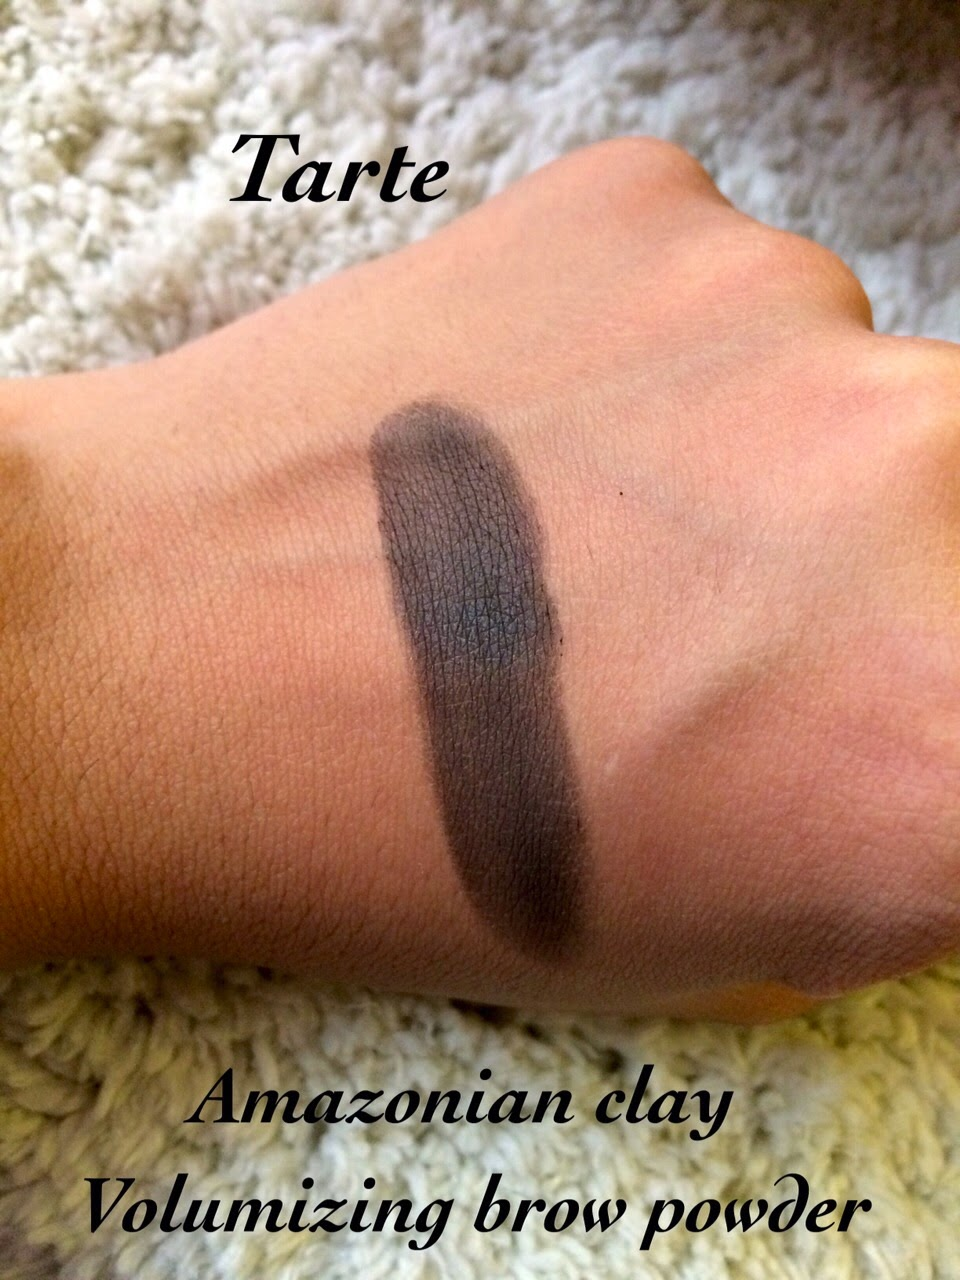 Tarte Amazonian Clay Volumizing Brow Powder In Black Brown Review